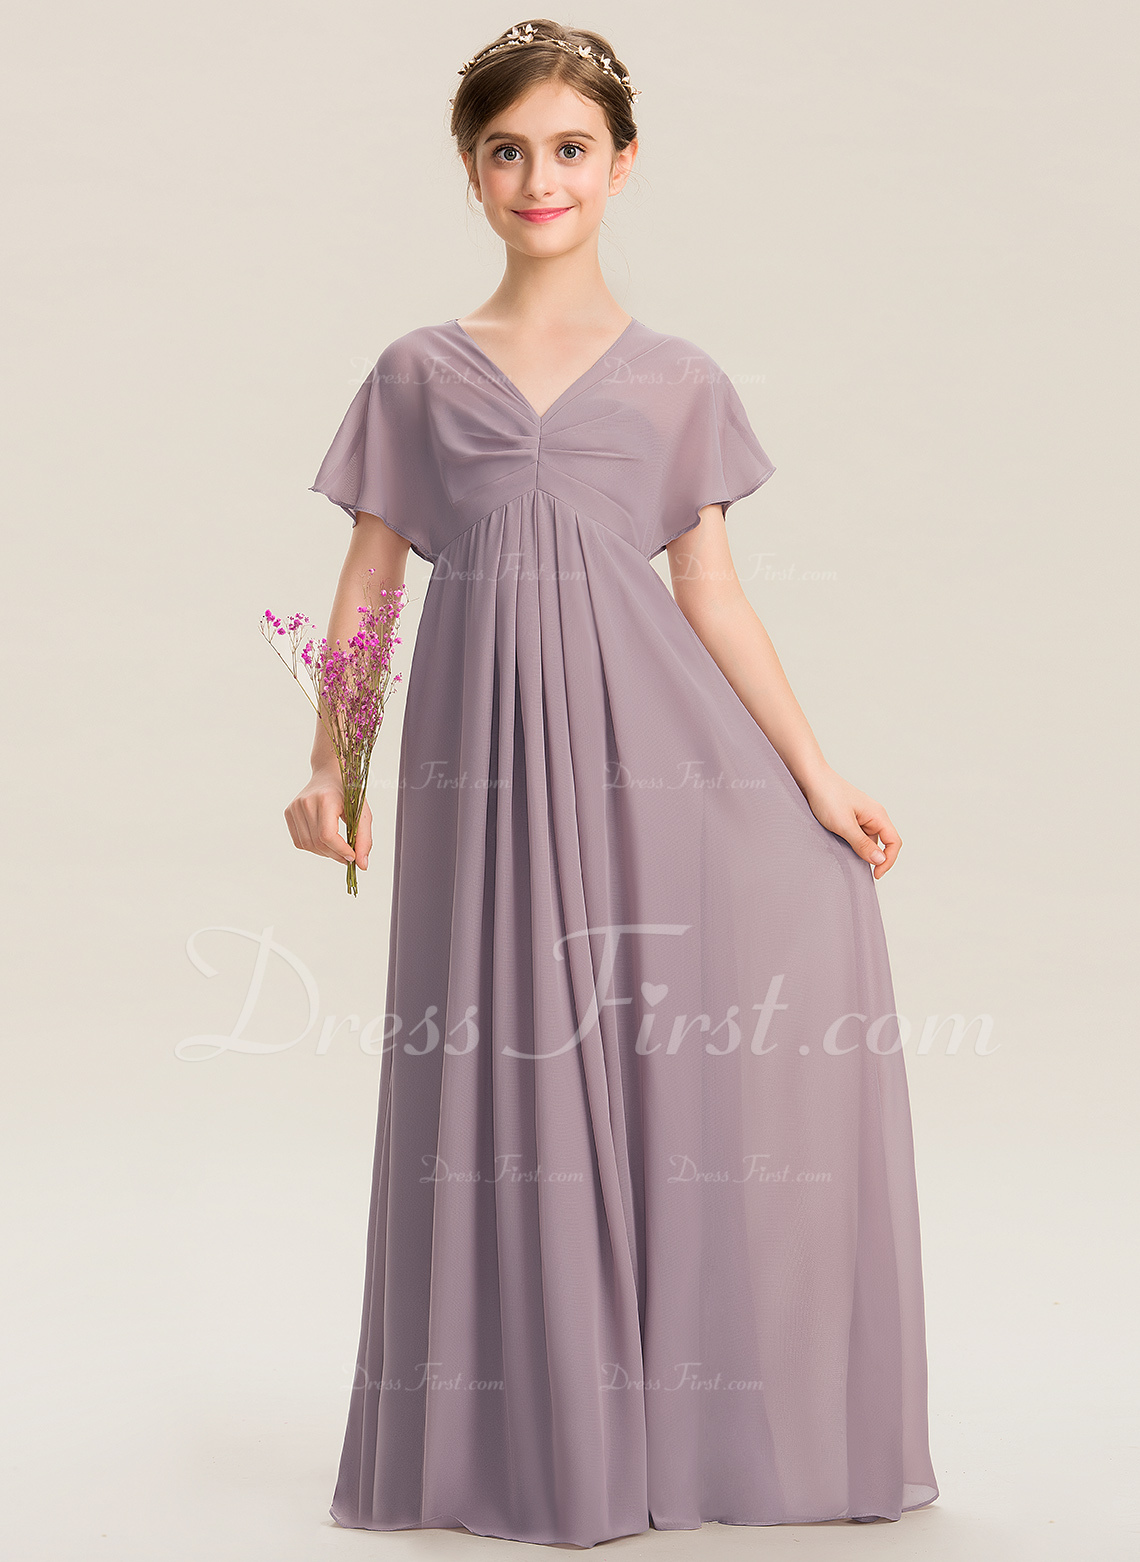 c4d8869a5ebae A-Line V-neck Floor-Length Chiffon Junior Bridesmaid Dress With Ruffle   173299